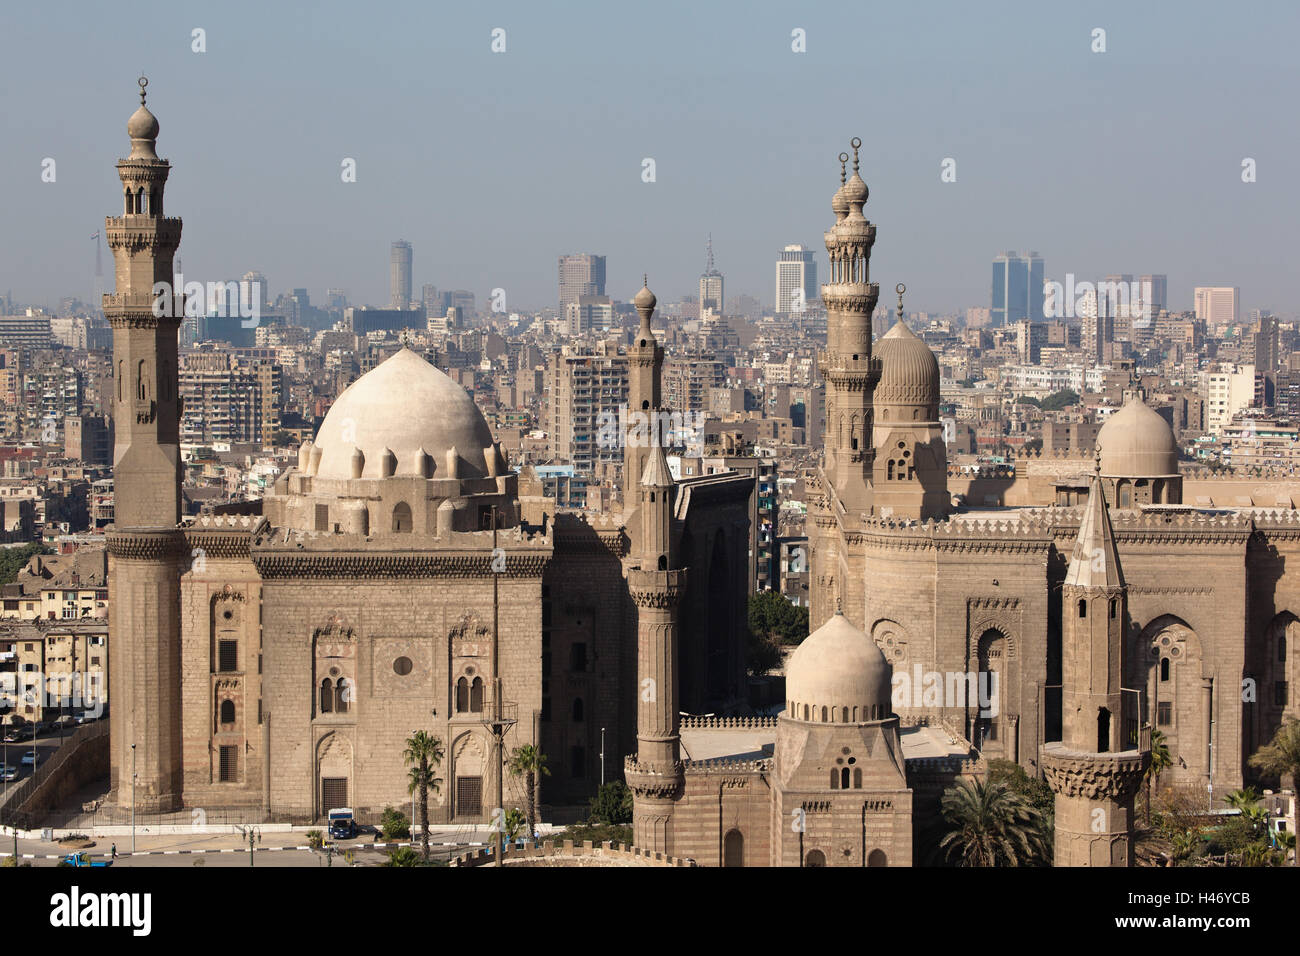 Egypt, Cairo, Citadel, View At Mosque Madrassa Of Sultan Hassan,